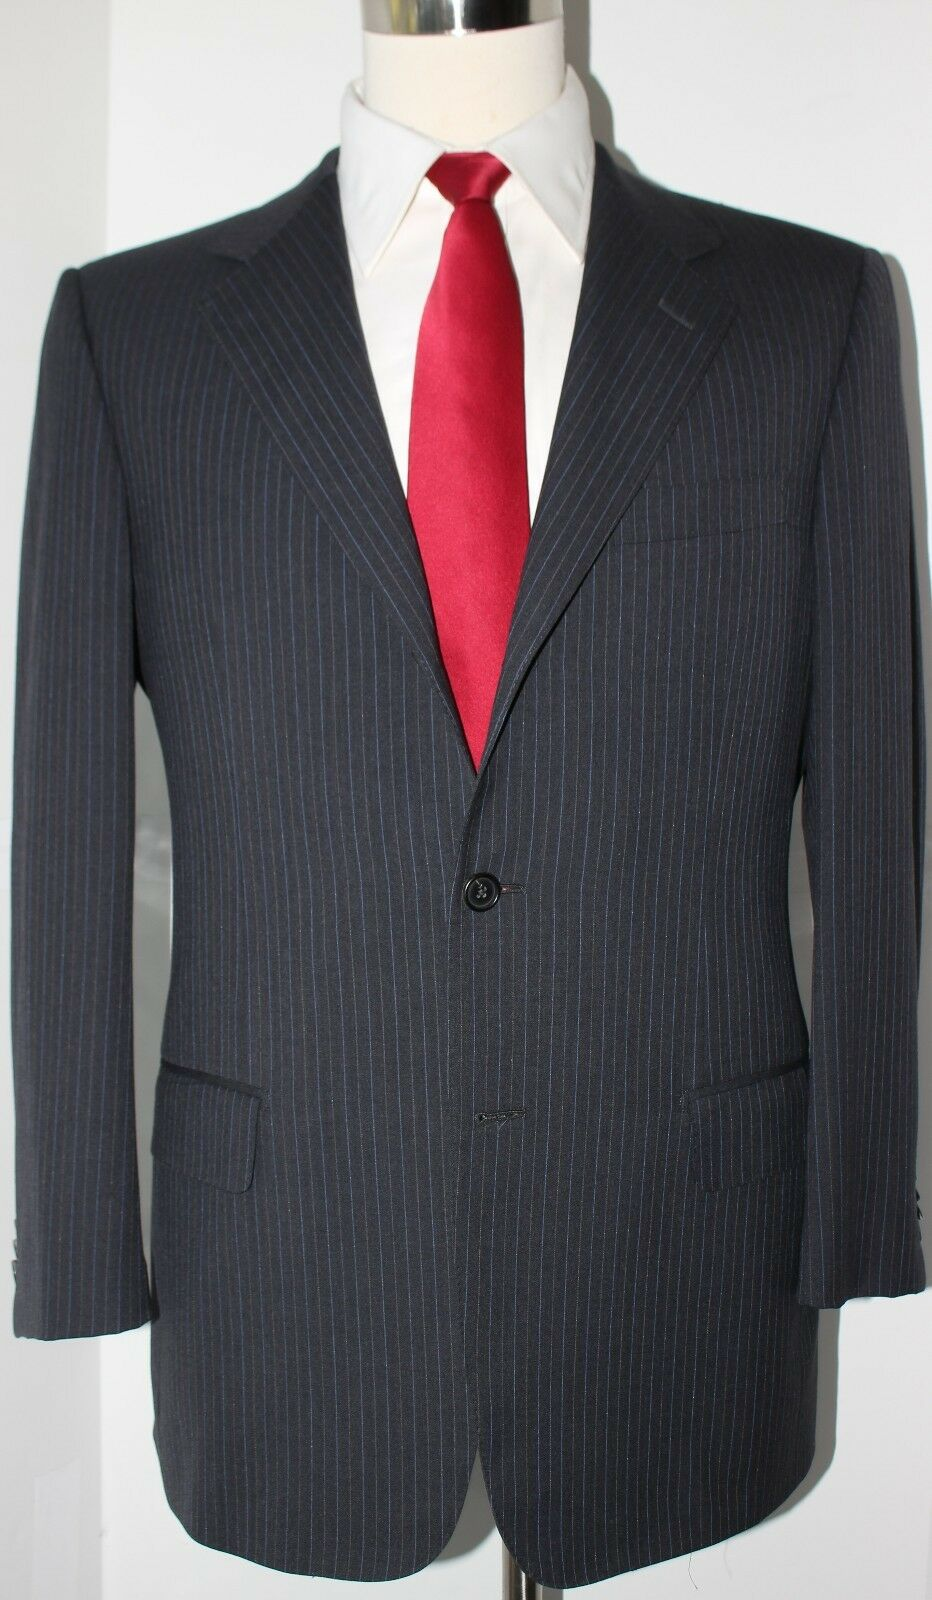 Zegna grau 15 mil Super 150s Wool Three Button Side Vented Suit 42 R Slim 34 29